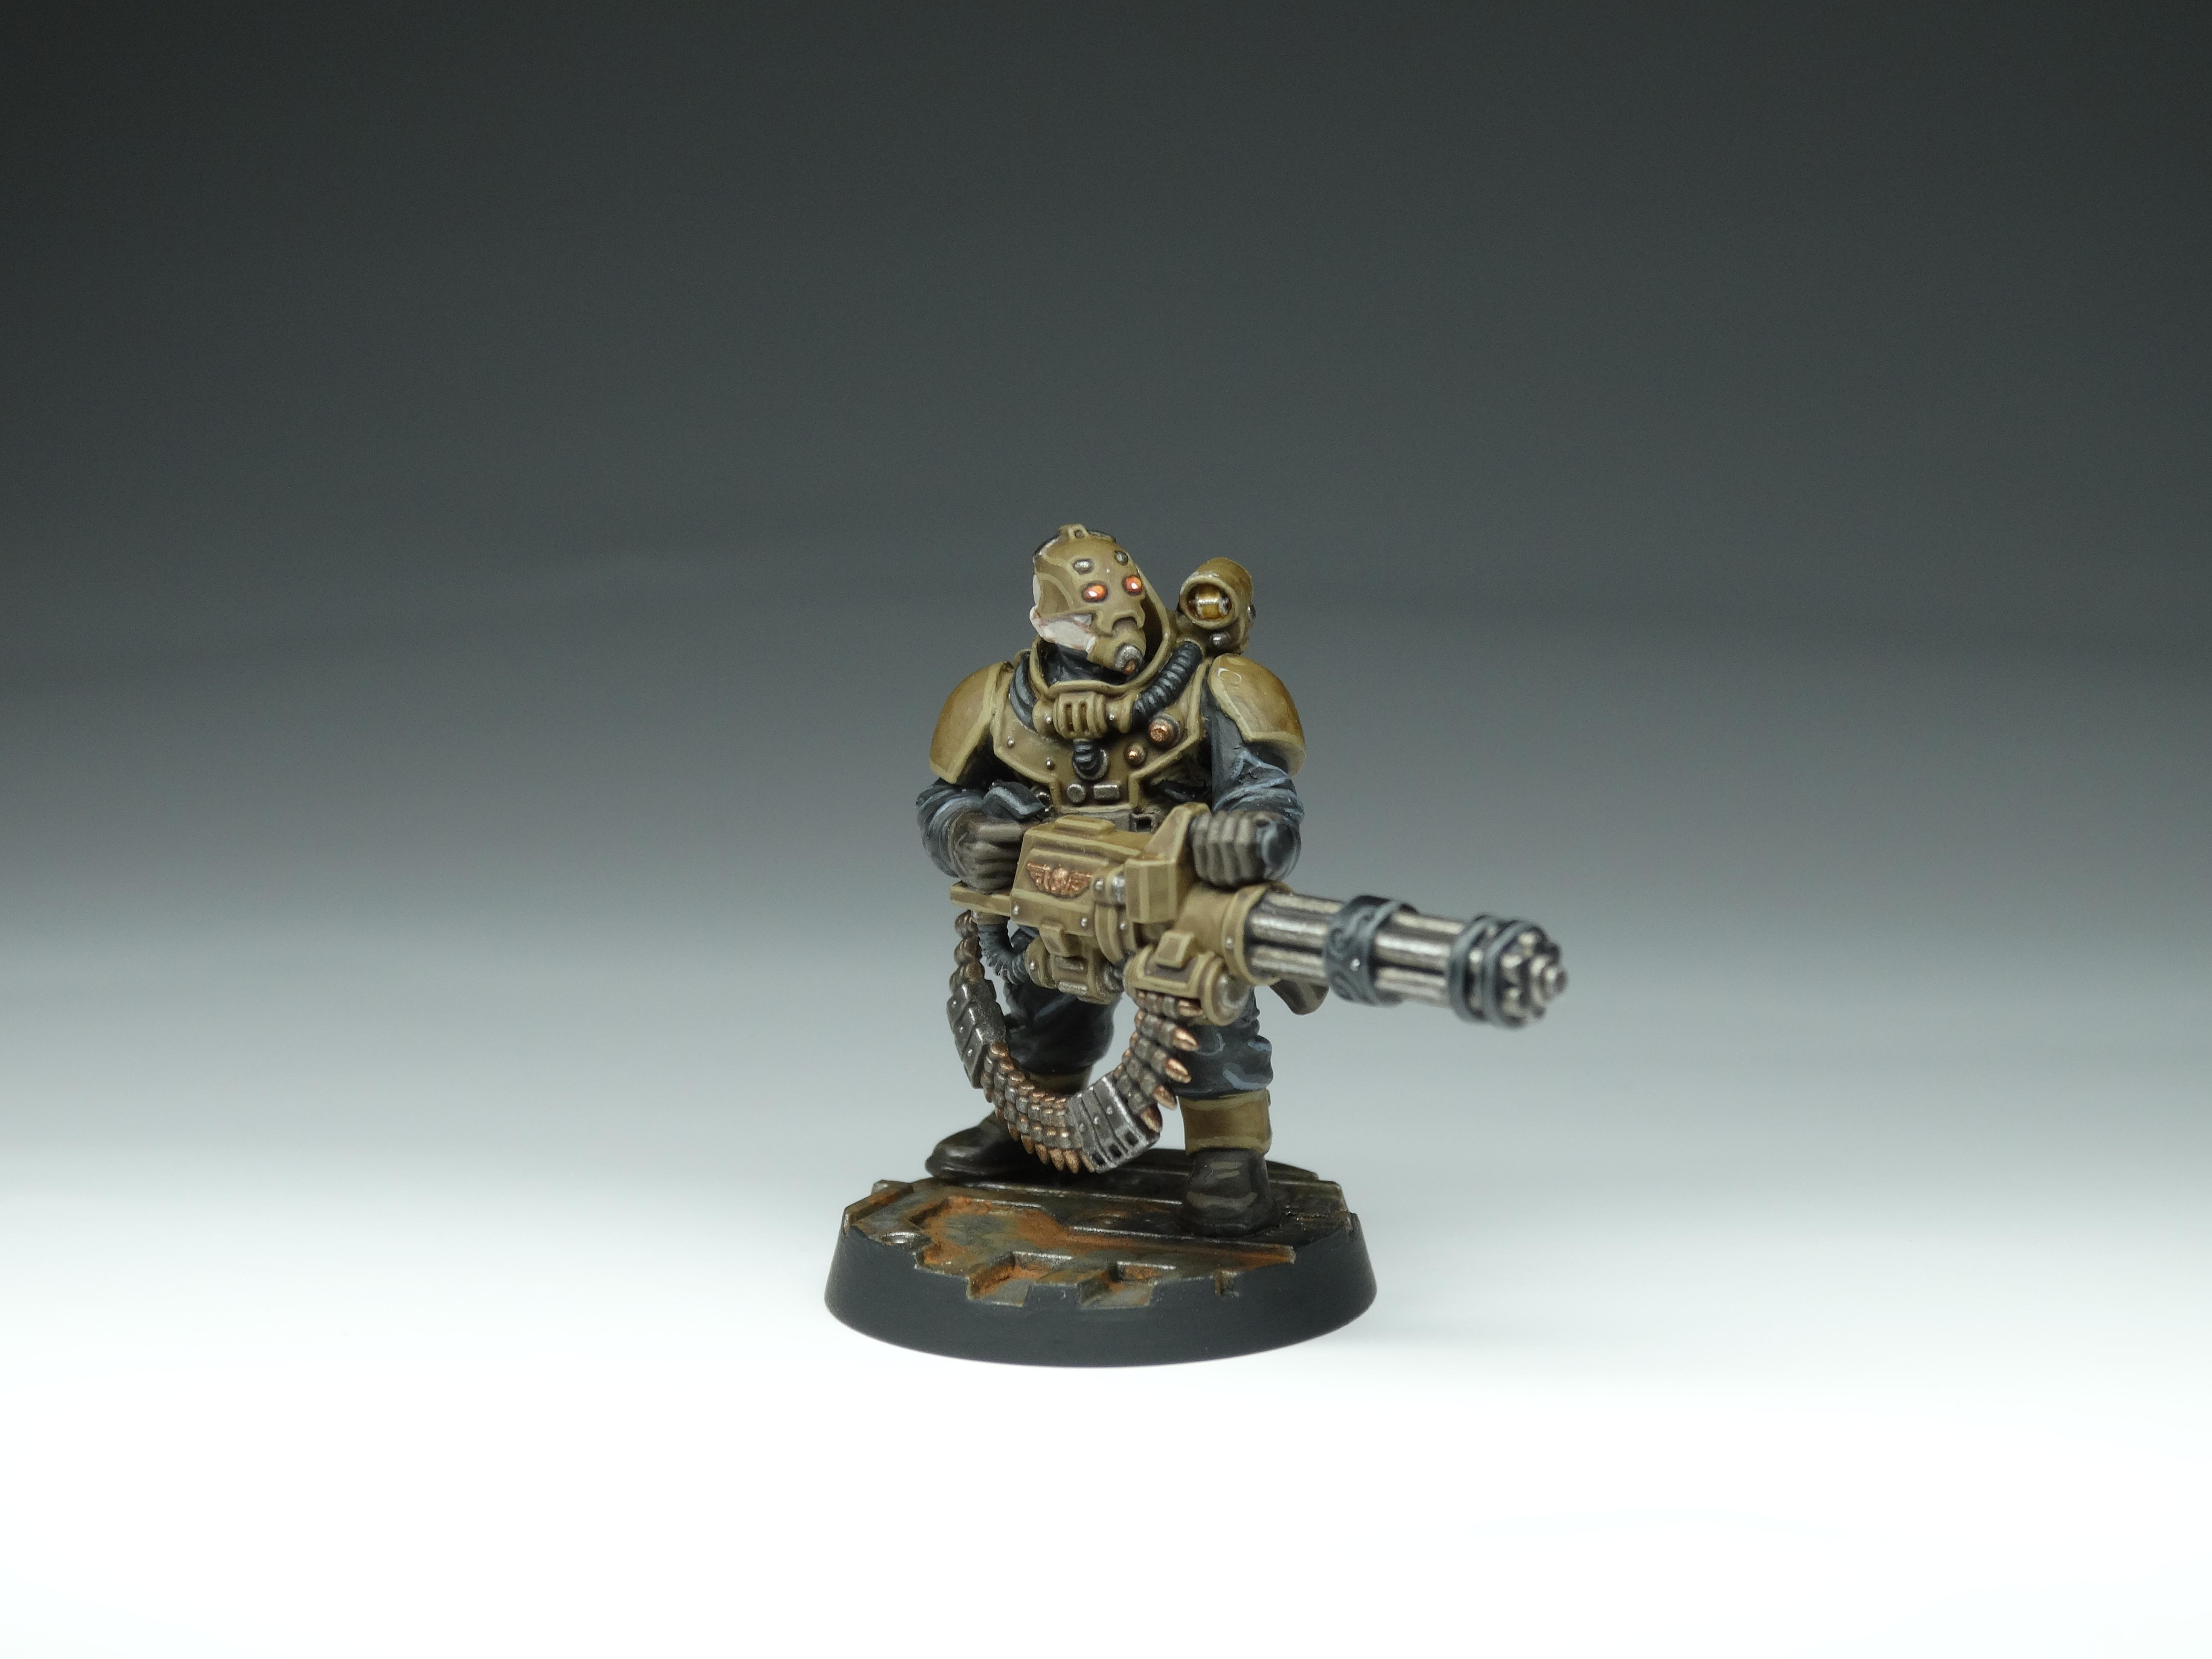 Conversion, Imperial Guard, Imperial Navy, Inq28, Kitbash, Rogue Trader, Voidsmen, Warhammer 40,000